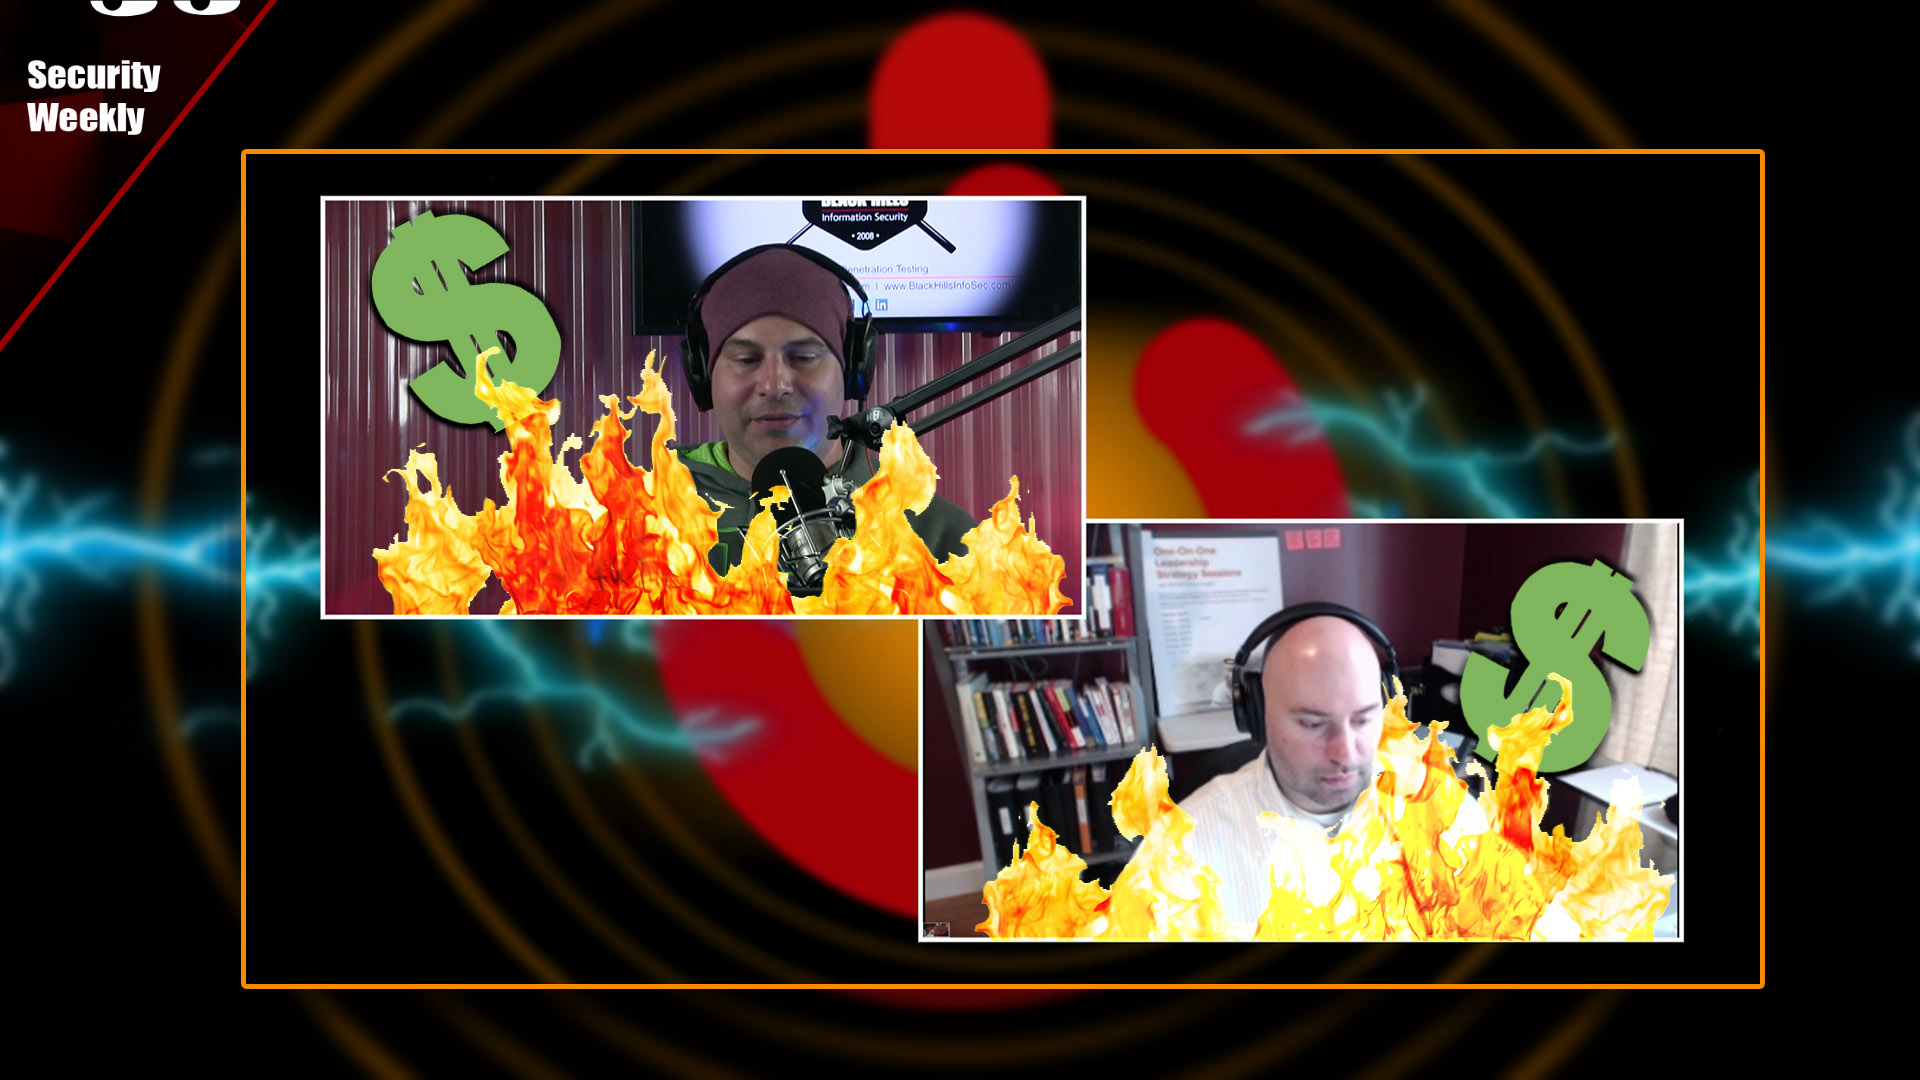 Artwork for News - Startup Security Weekly #39